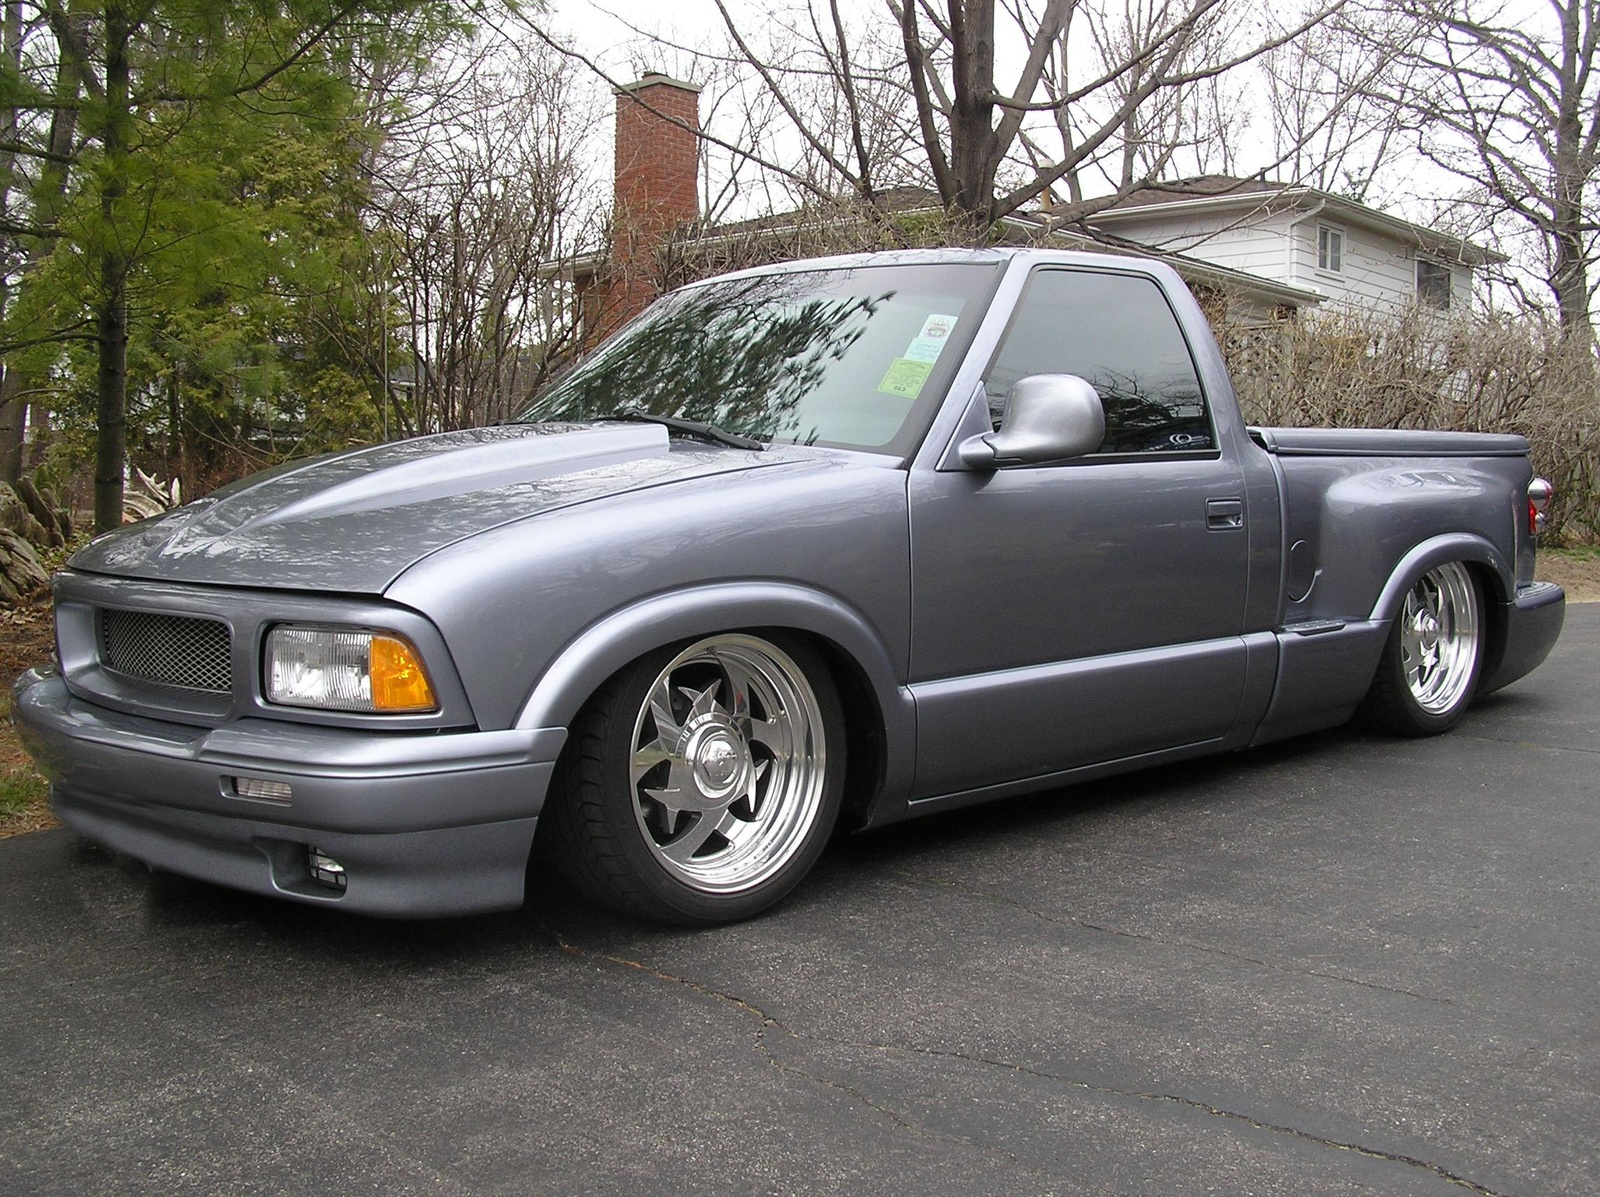 Gmc stepside photo - 3